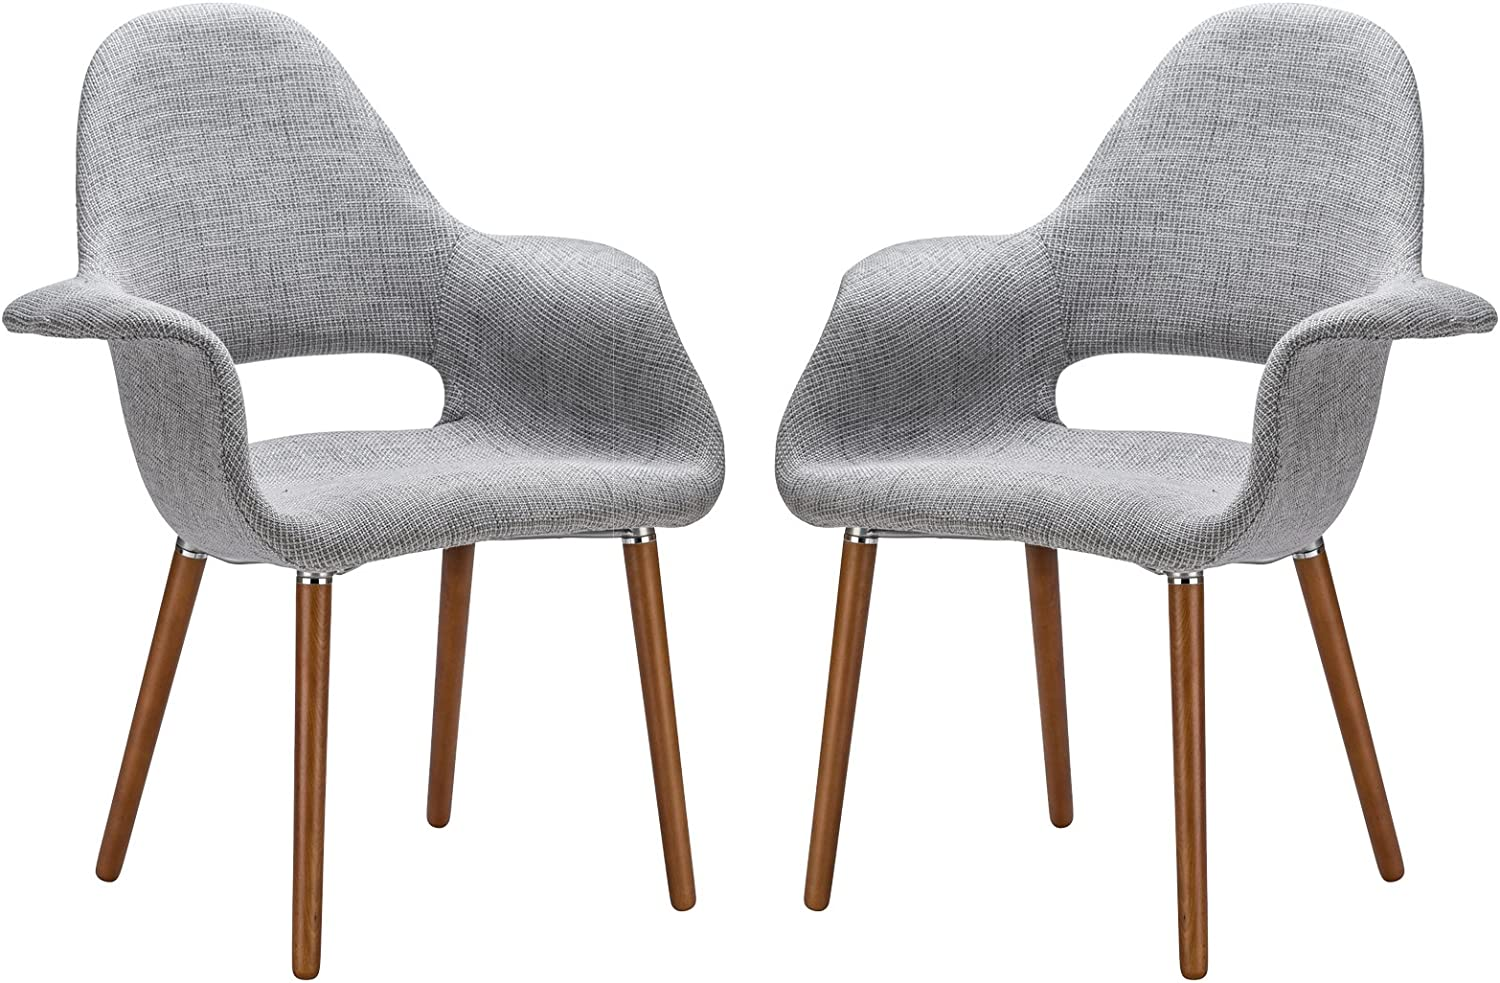 Poly and Bark Barclay Upholstered Fabric Modern Dining Arm Chair with Wooden Legs, Light Grey Set of 2